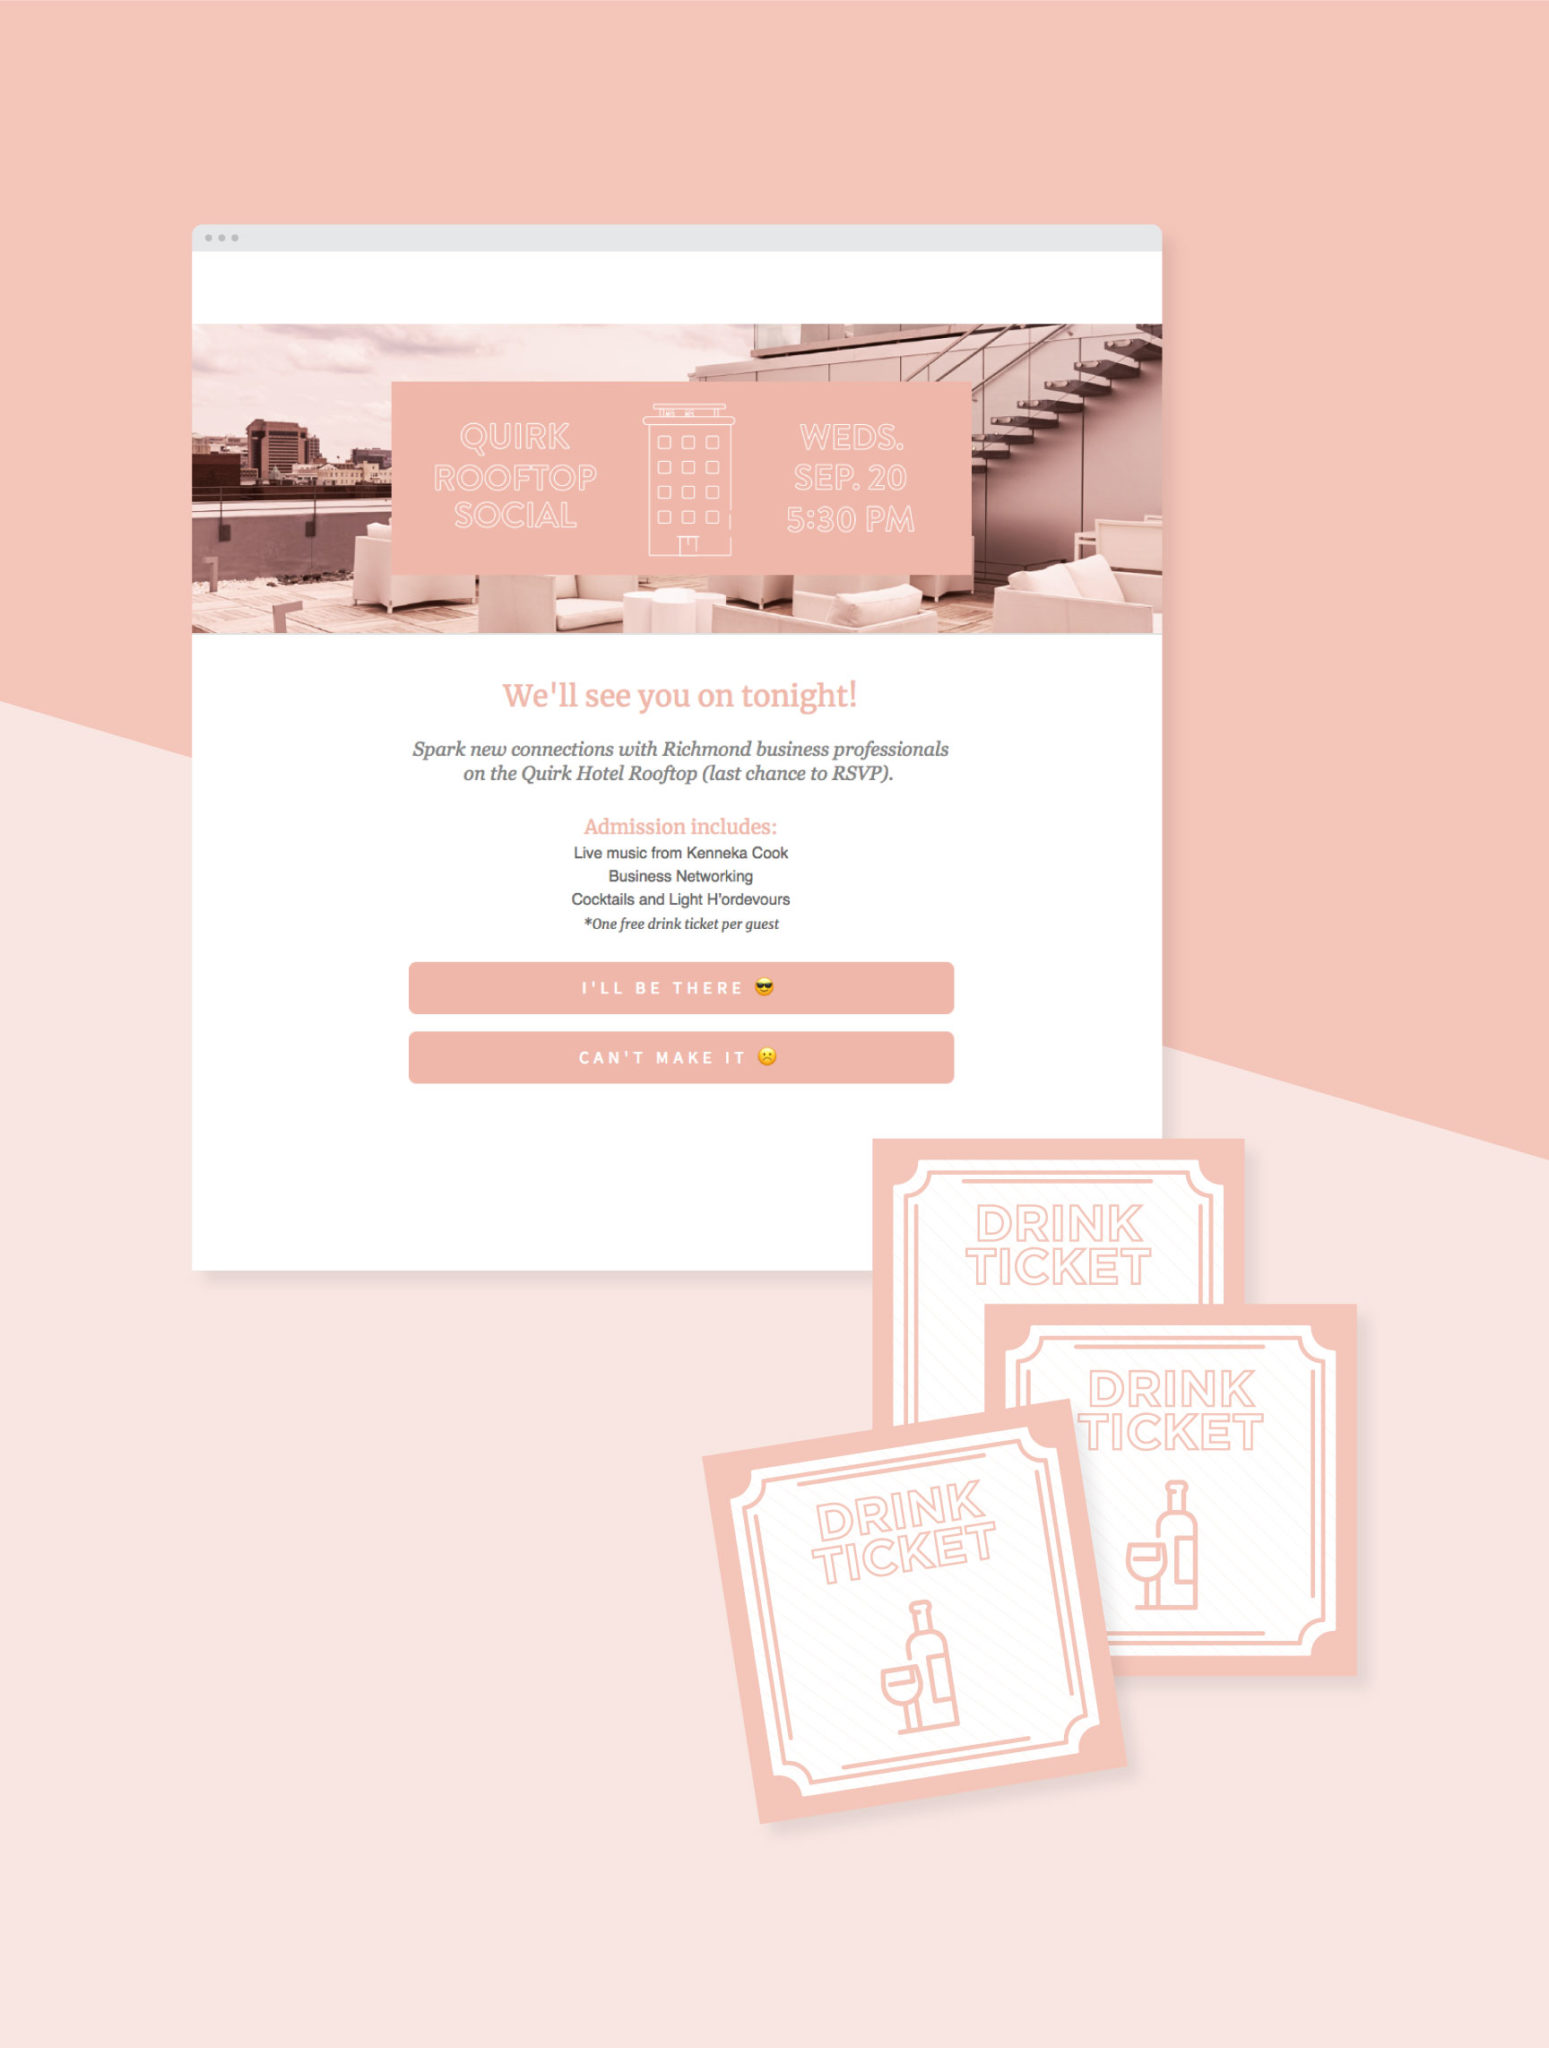 email invitation and drink tickets for Quirk Hotel rooftop event on pink background